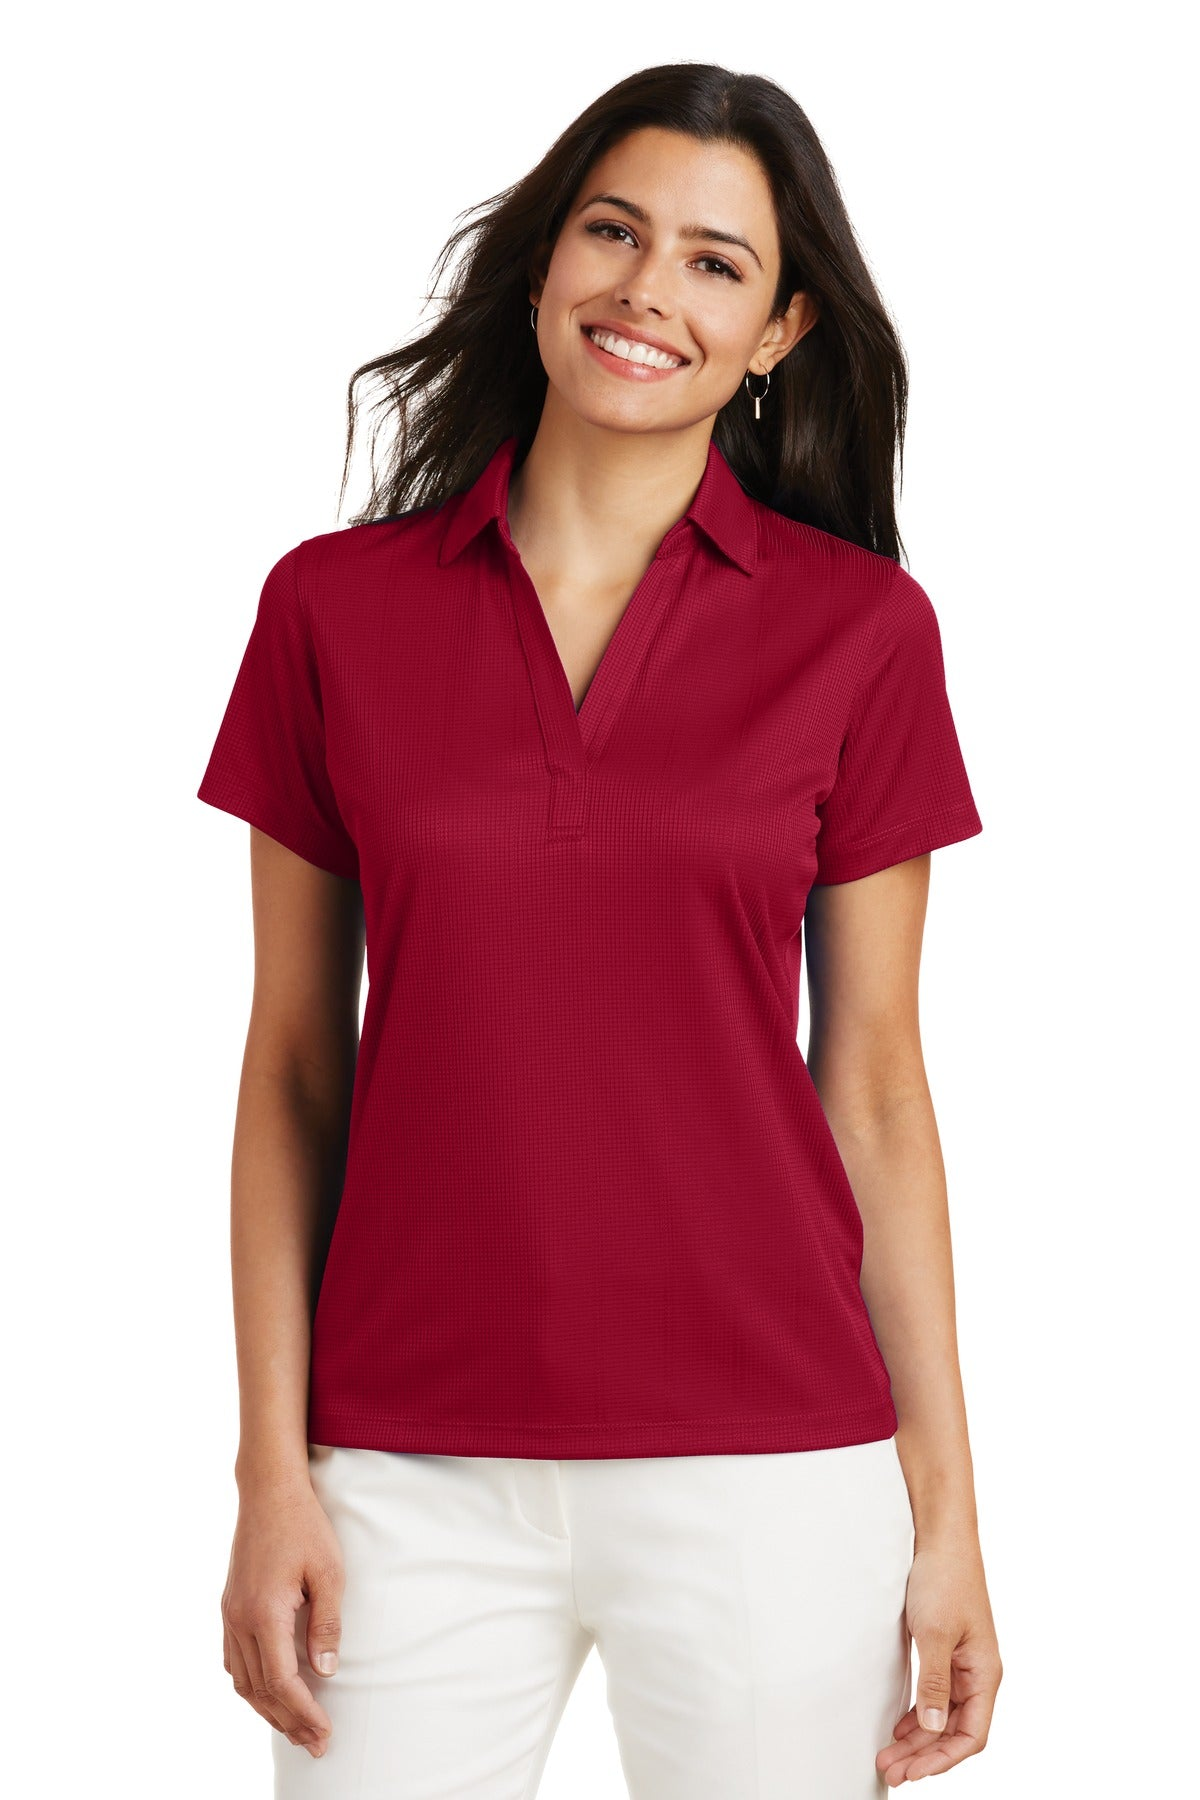 White Port Authority Ladies Silk Touch Performance Polo.